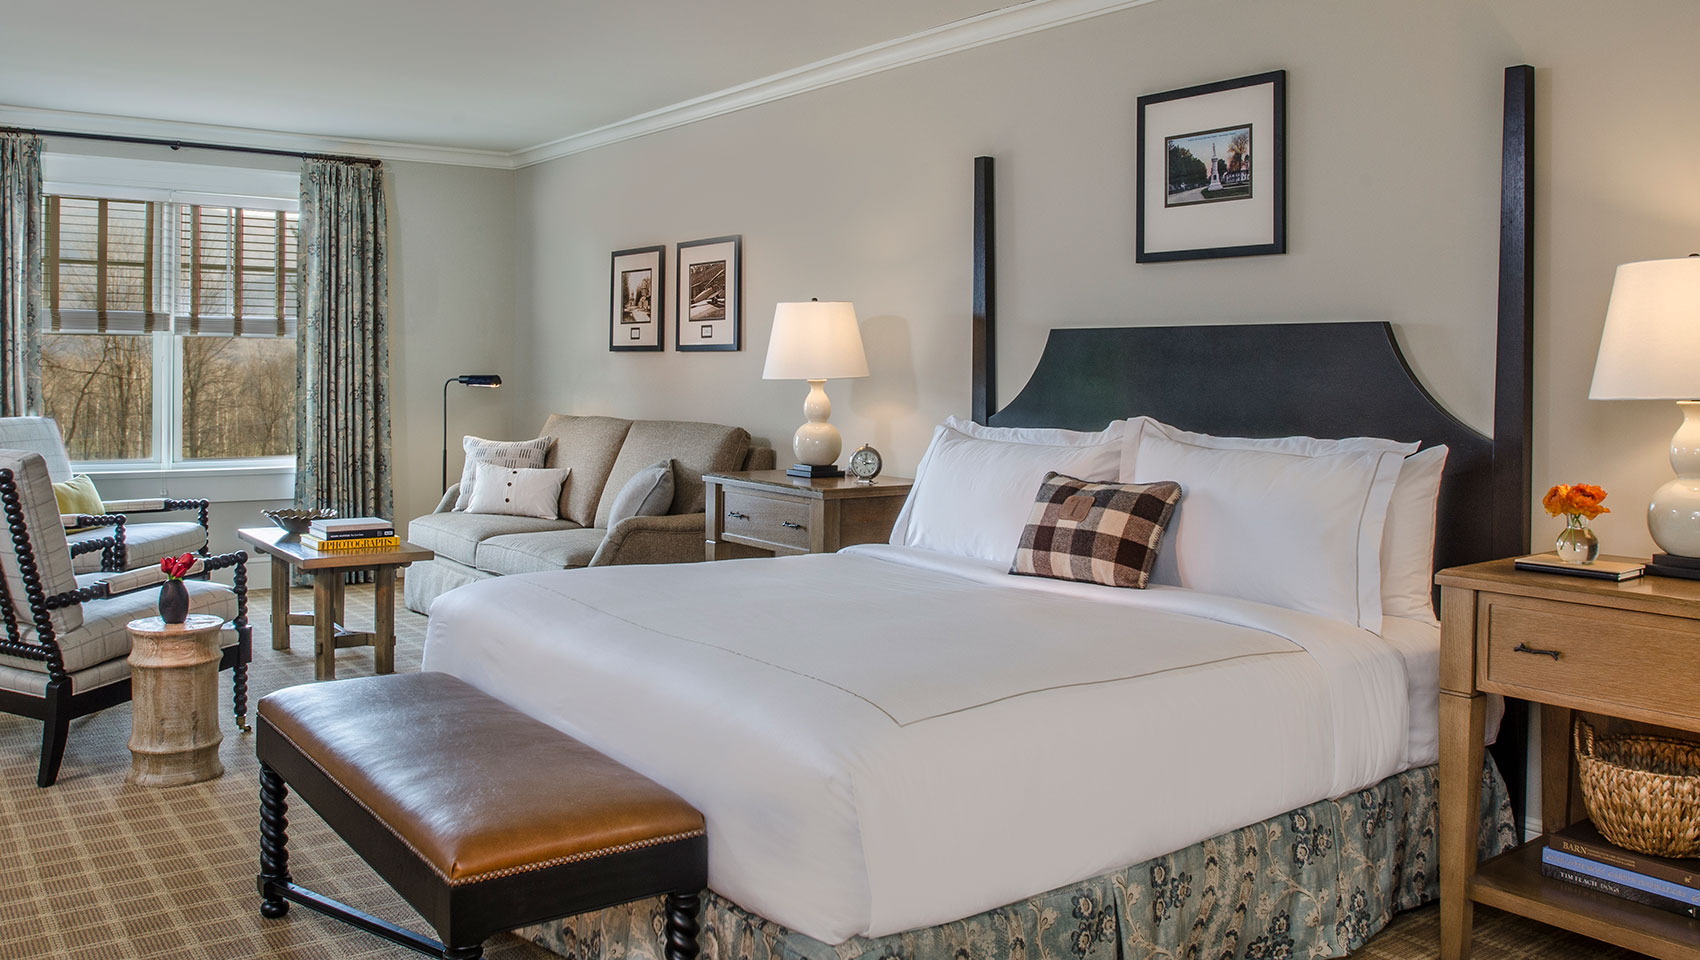 One bedroom suite at Taconic Hotel in Vermont